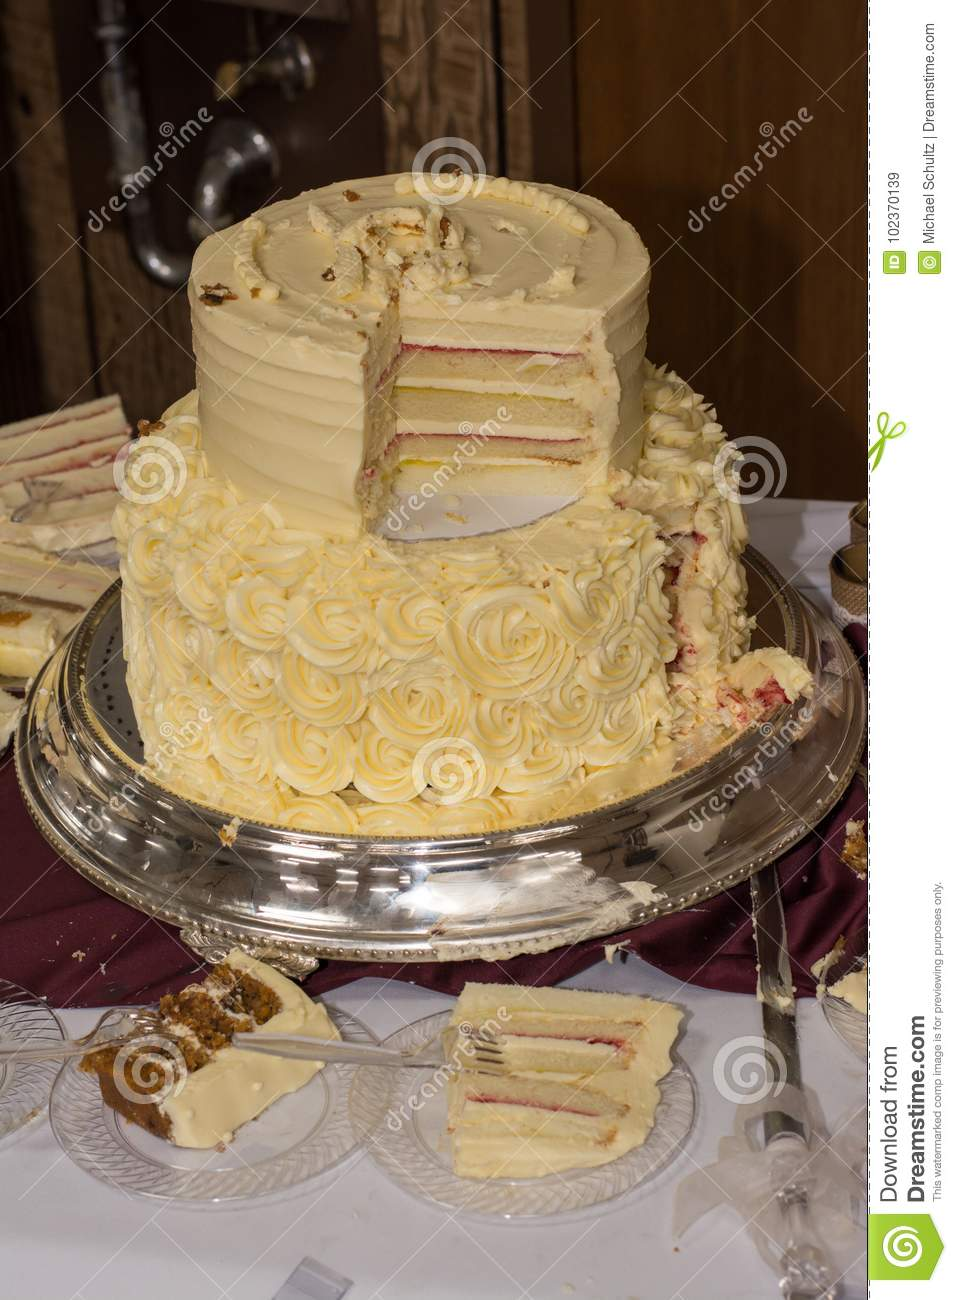 Wedding cake stock image. Image of dark, delicious, frosted - 102370139